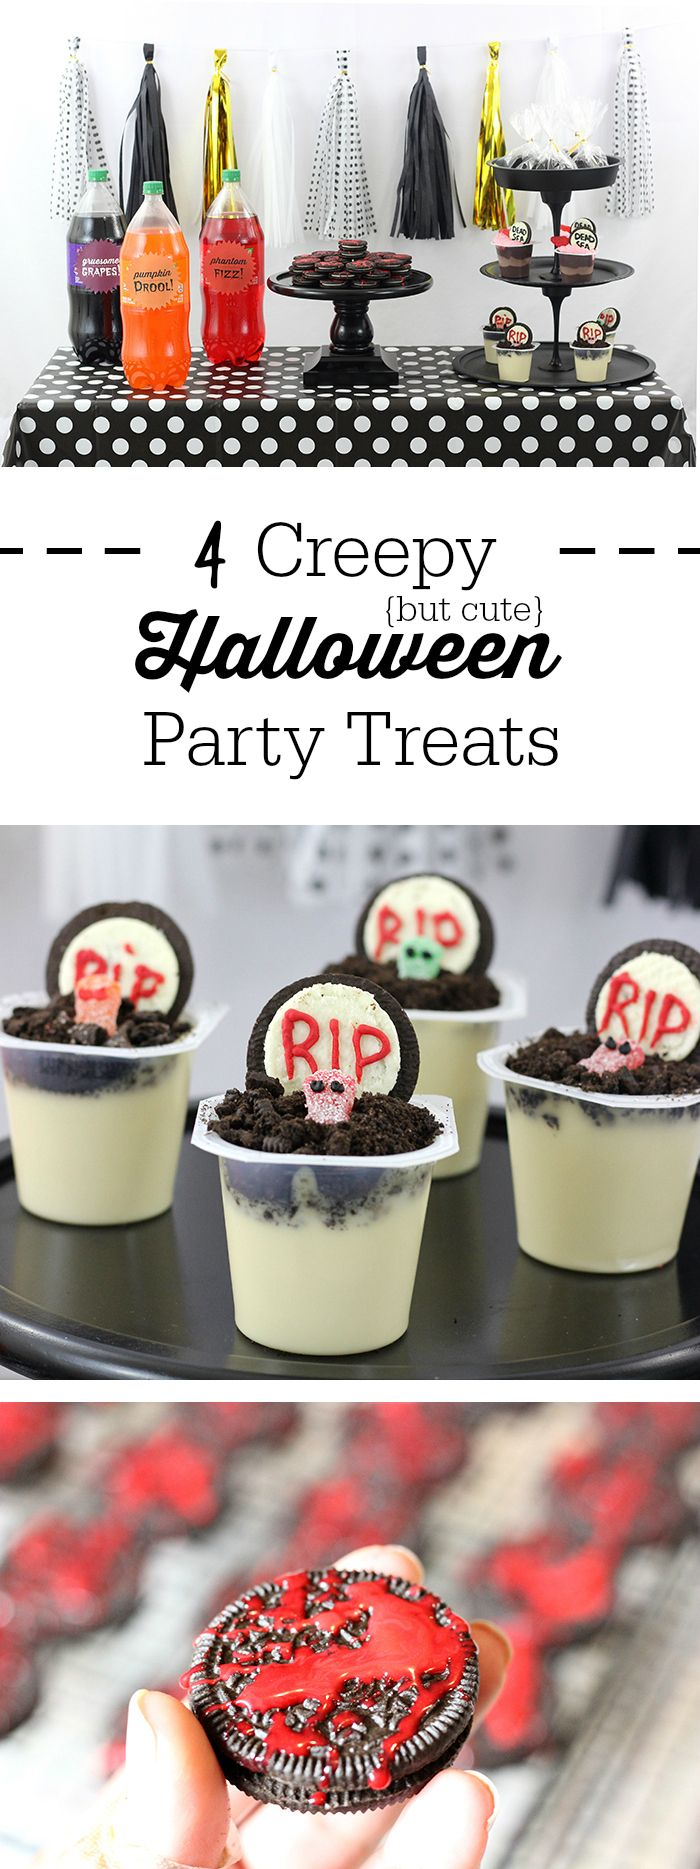 2170 best Halloween images on Pinterest